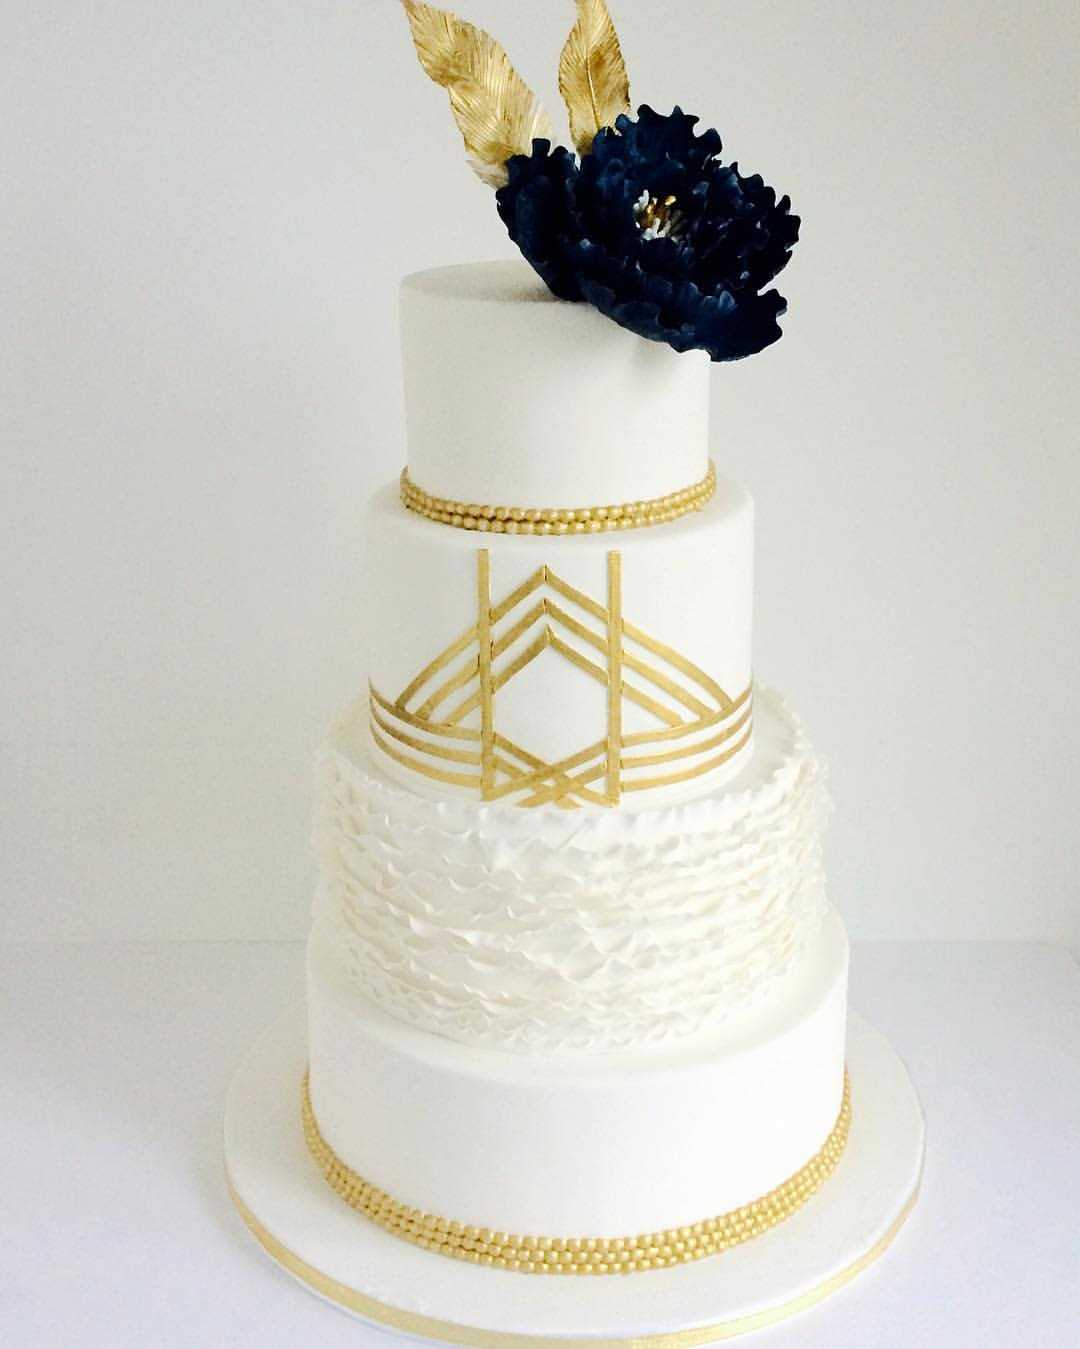 Great Gatsby inspired wedding cake with ruffles, gold pearls and open blue sugar peony